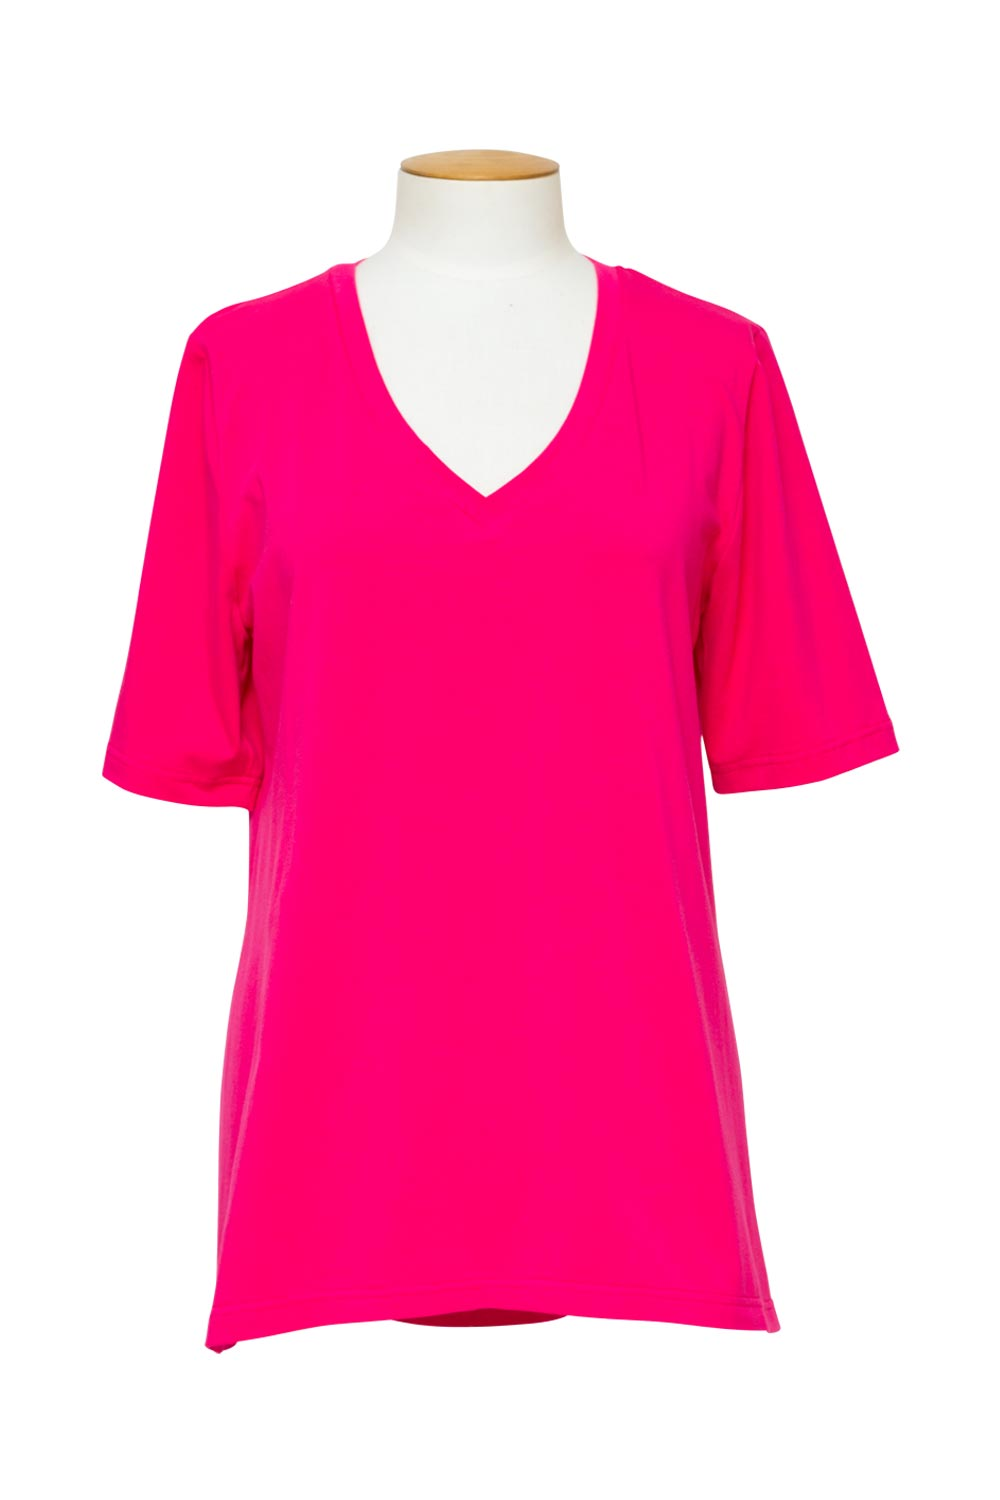 cashews-long-v-shirt-fushia